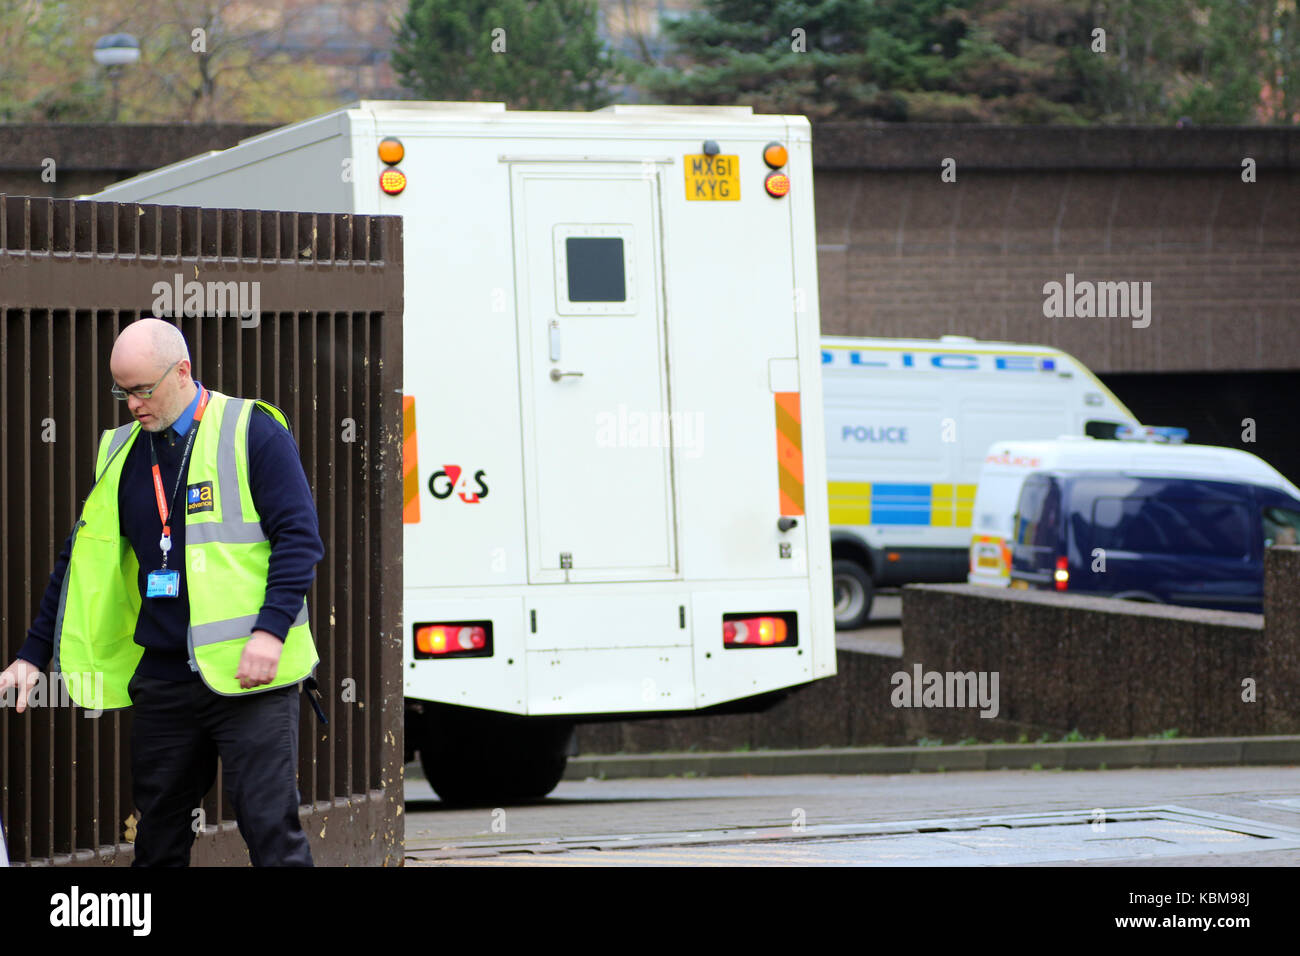 G4S custody van entering the yard at Glasgow Sheriff Court and Justice of the Peace Court, Carlton Place, Glasgow, - Stock Image